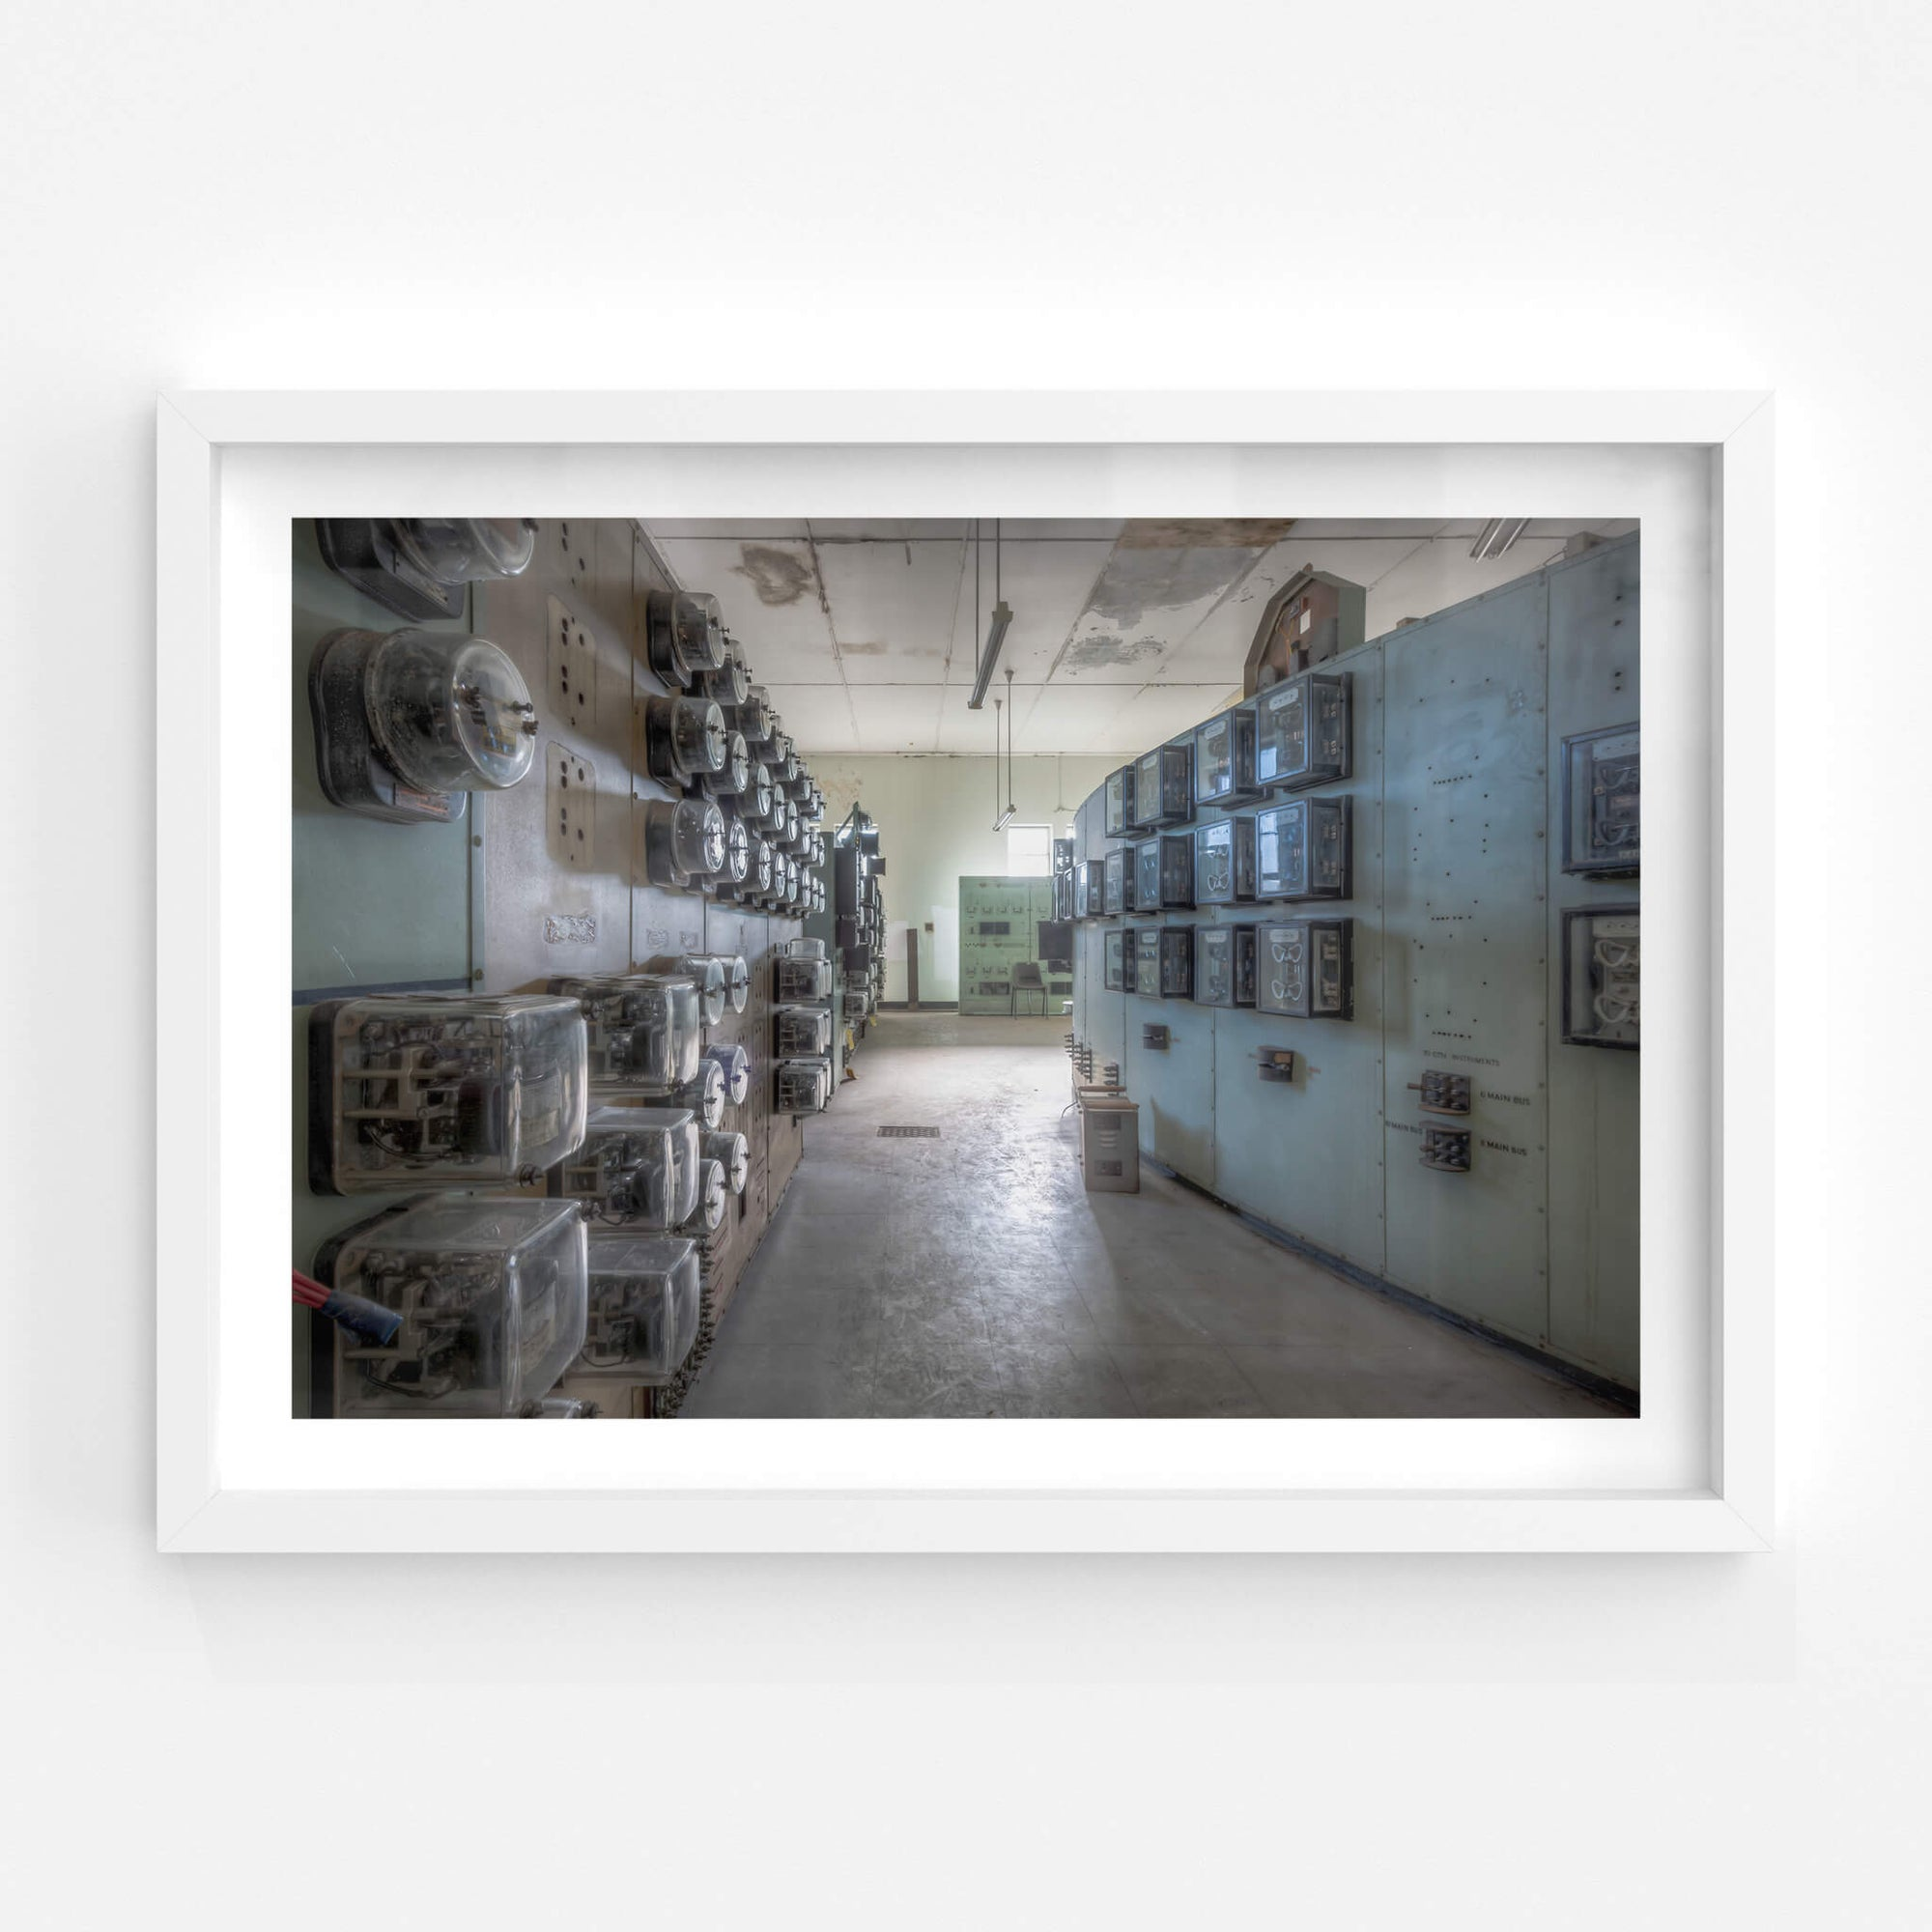 Ammeter Wall | White Bay Power Station Fine Art Print - Lost Collective Shop